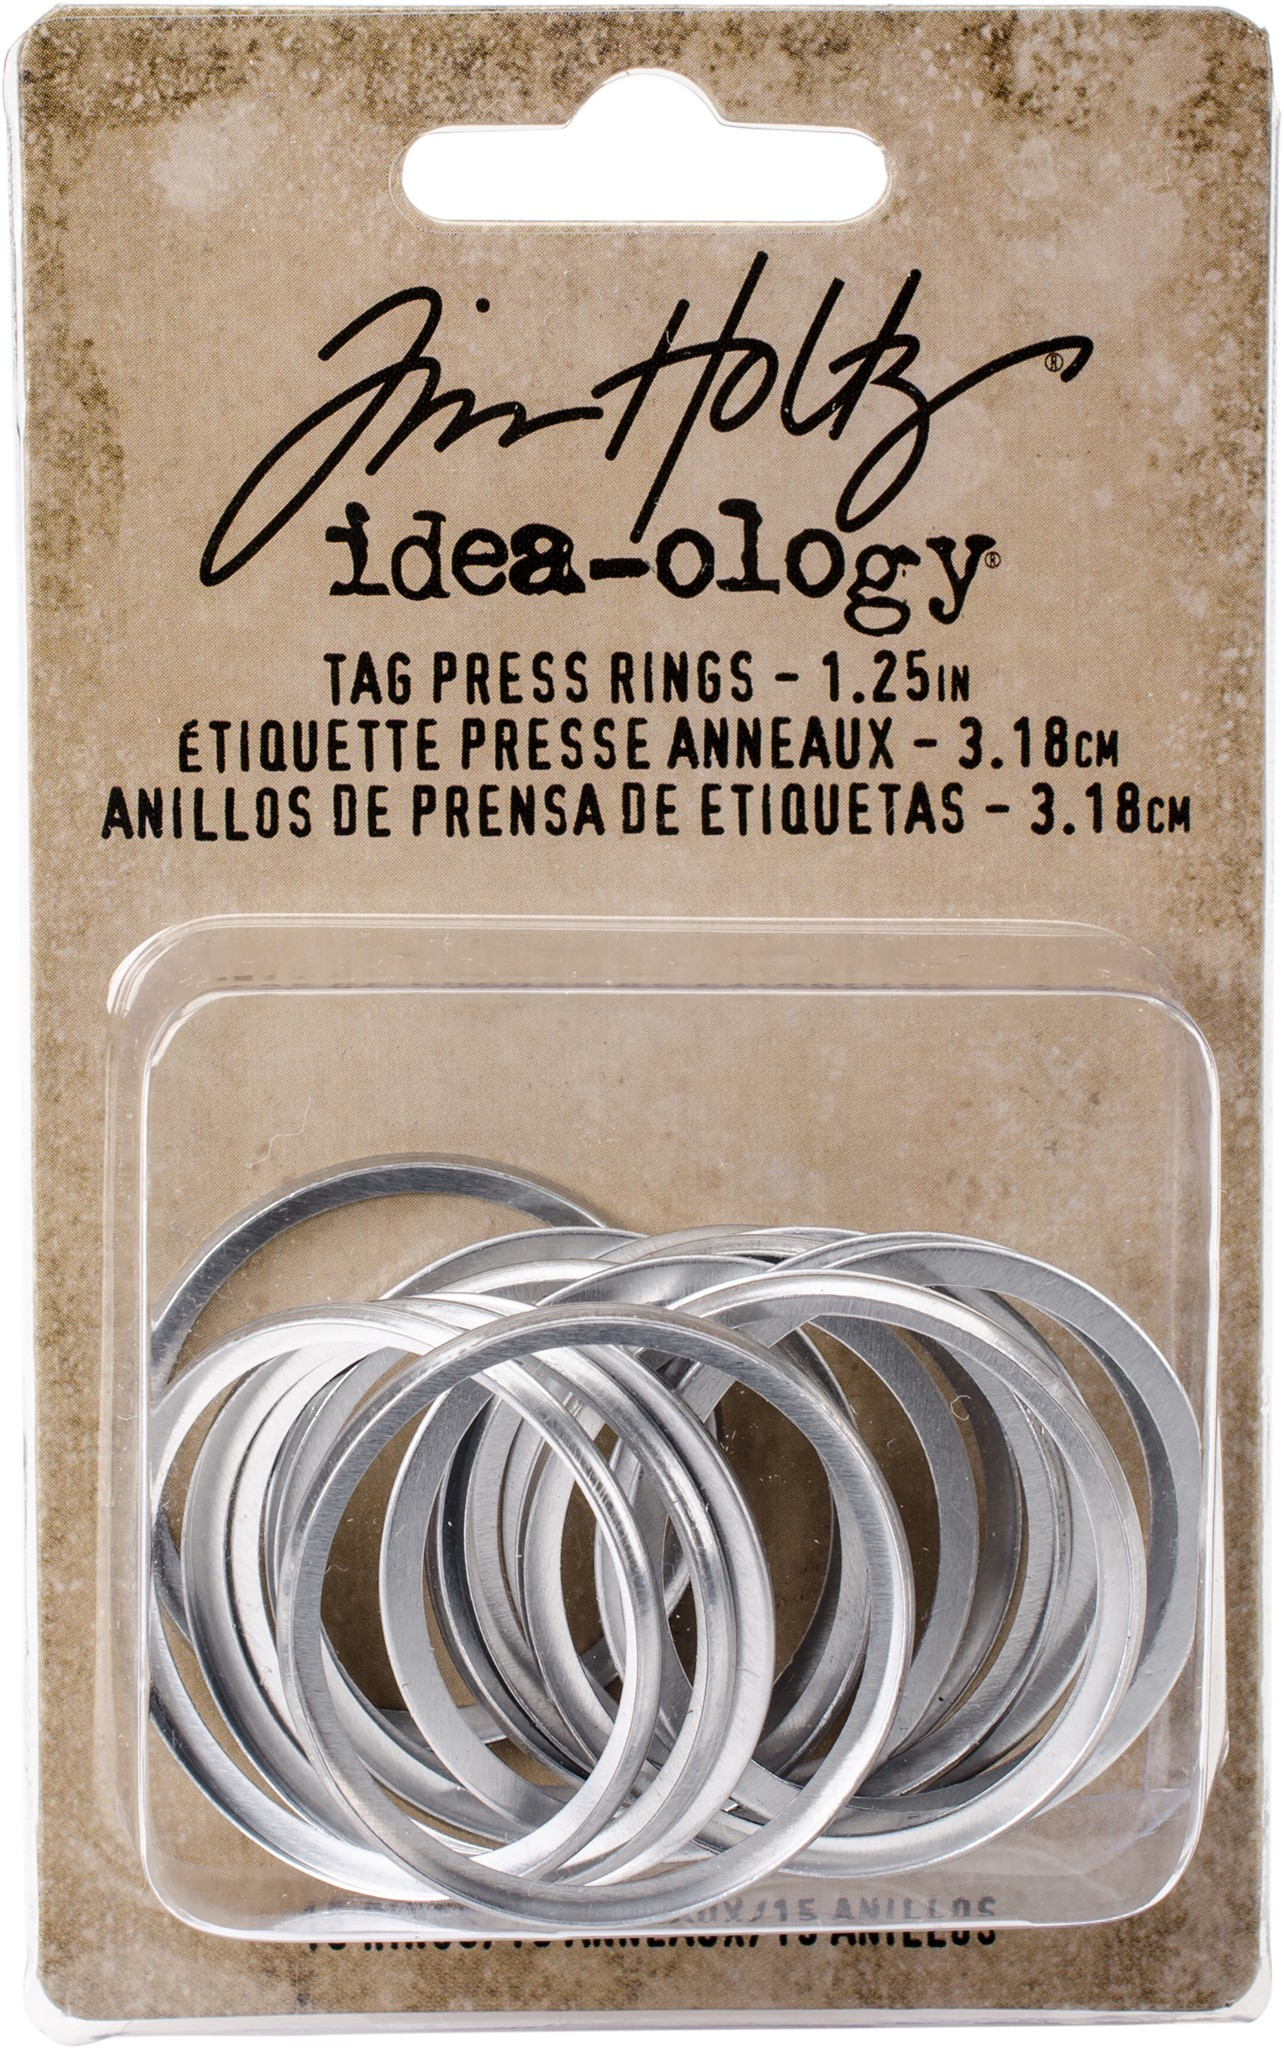 Advantus Tag Press Rings Tim Holtz 1.25 Inch Idea-ology Collection